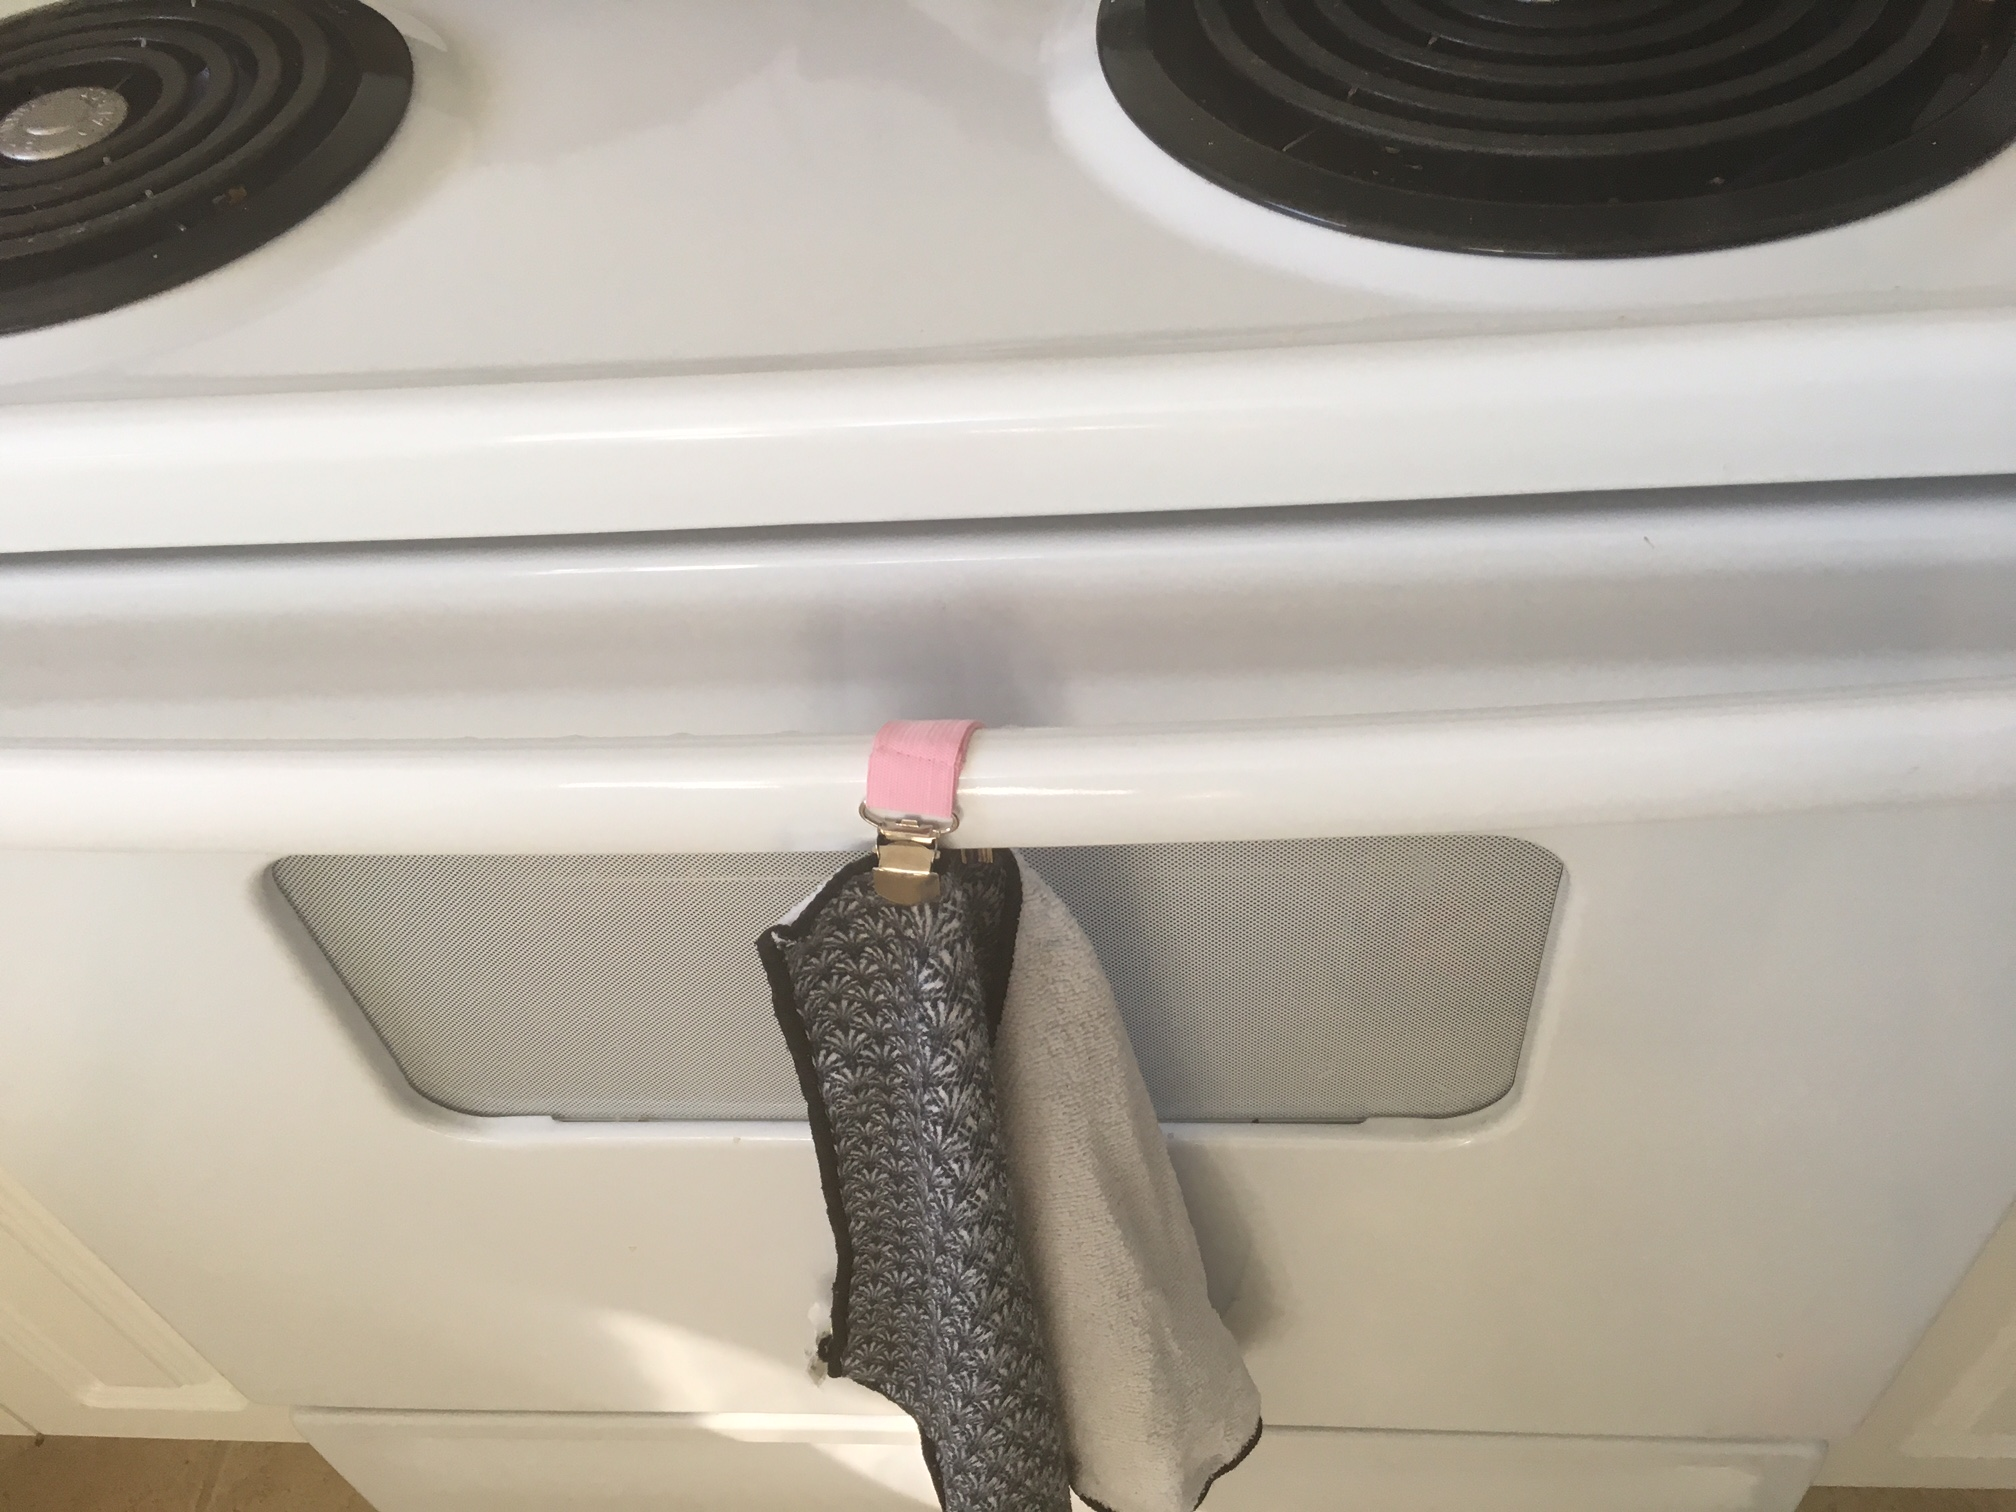 Picture of Don't Let the Kitchen Towel Fall Down.